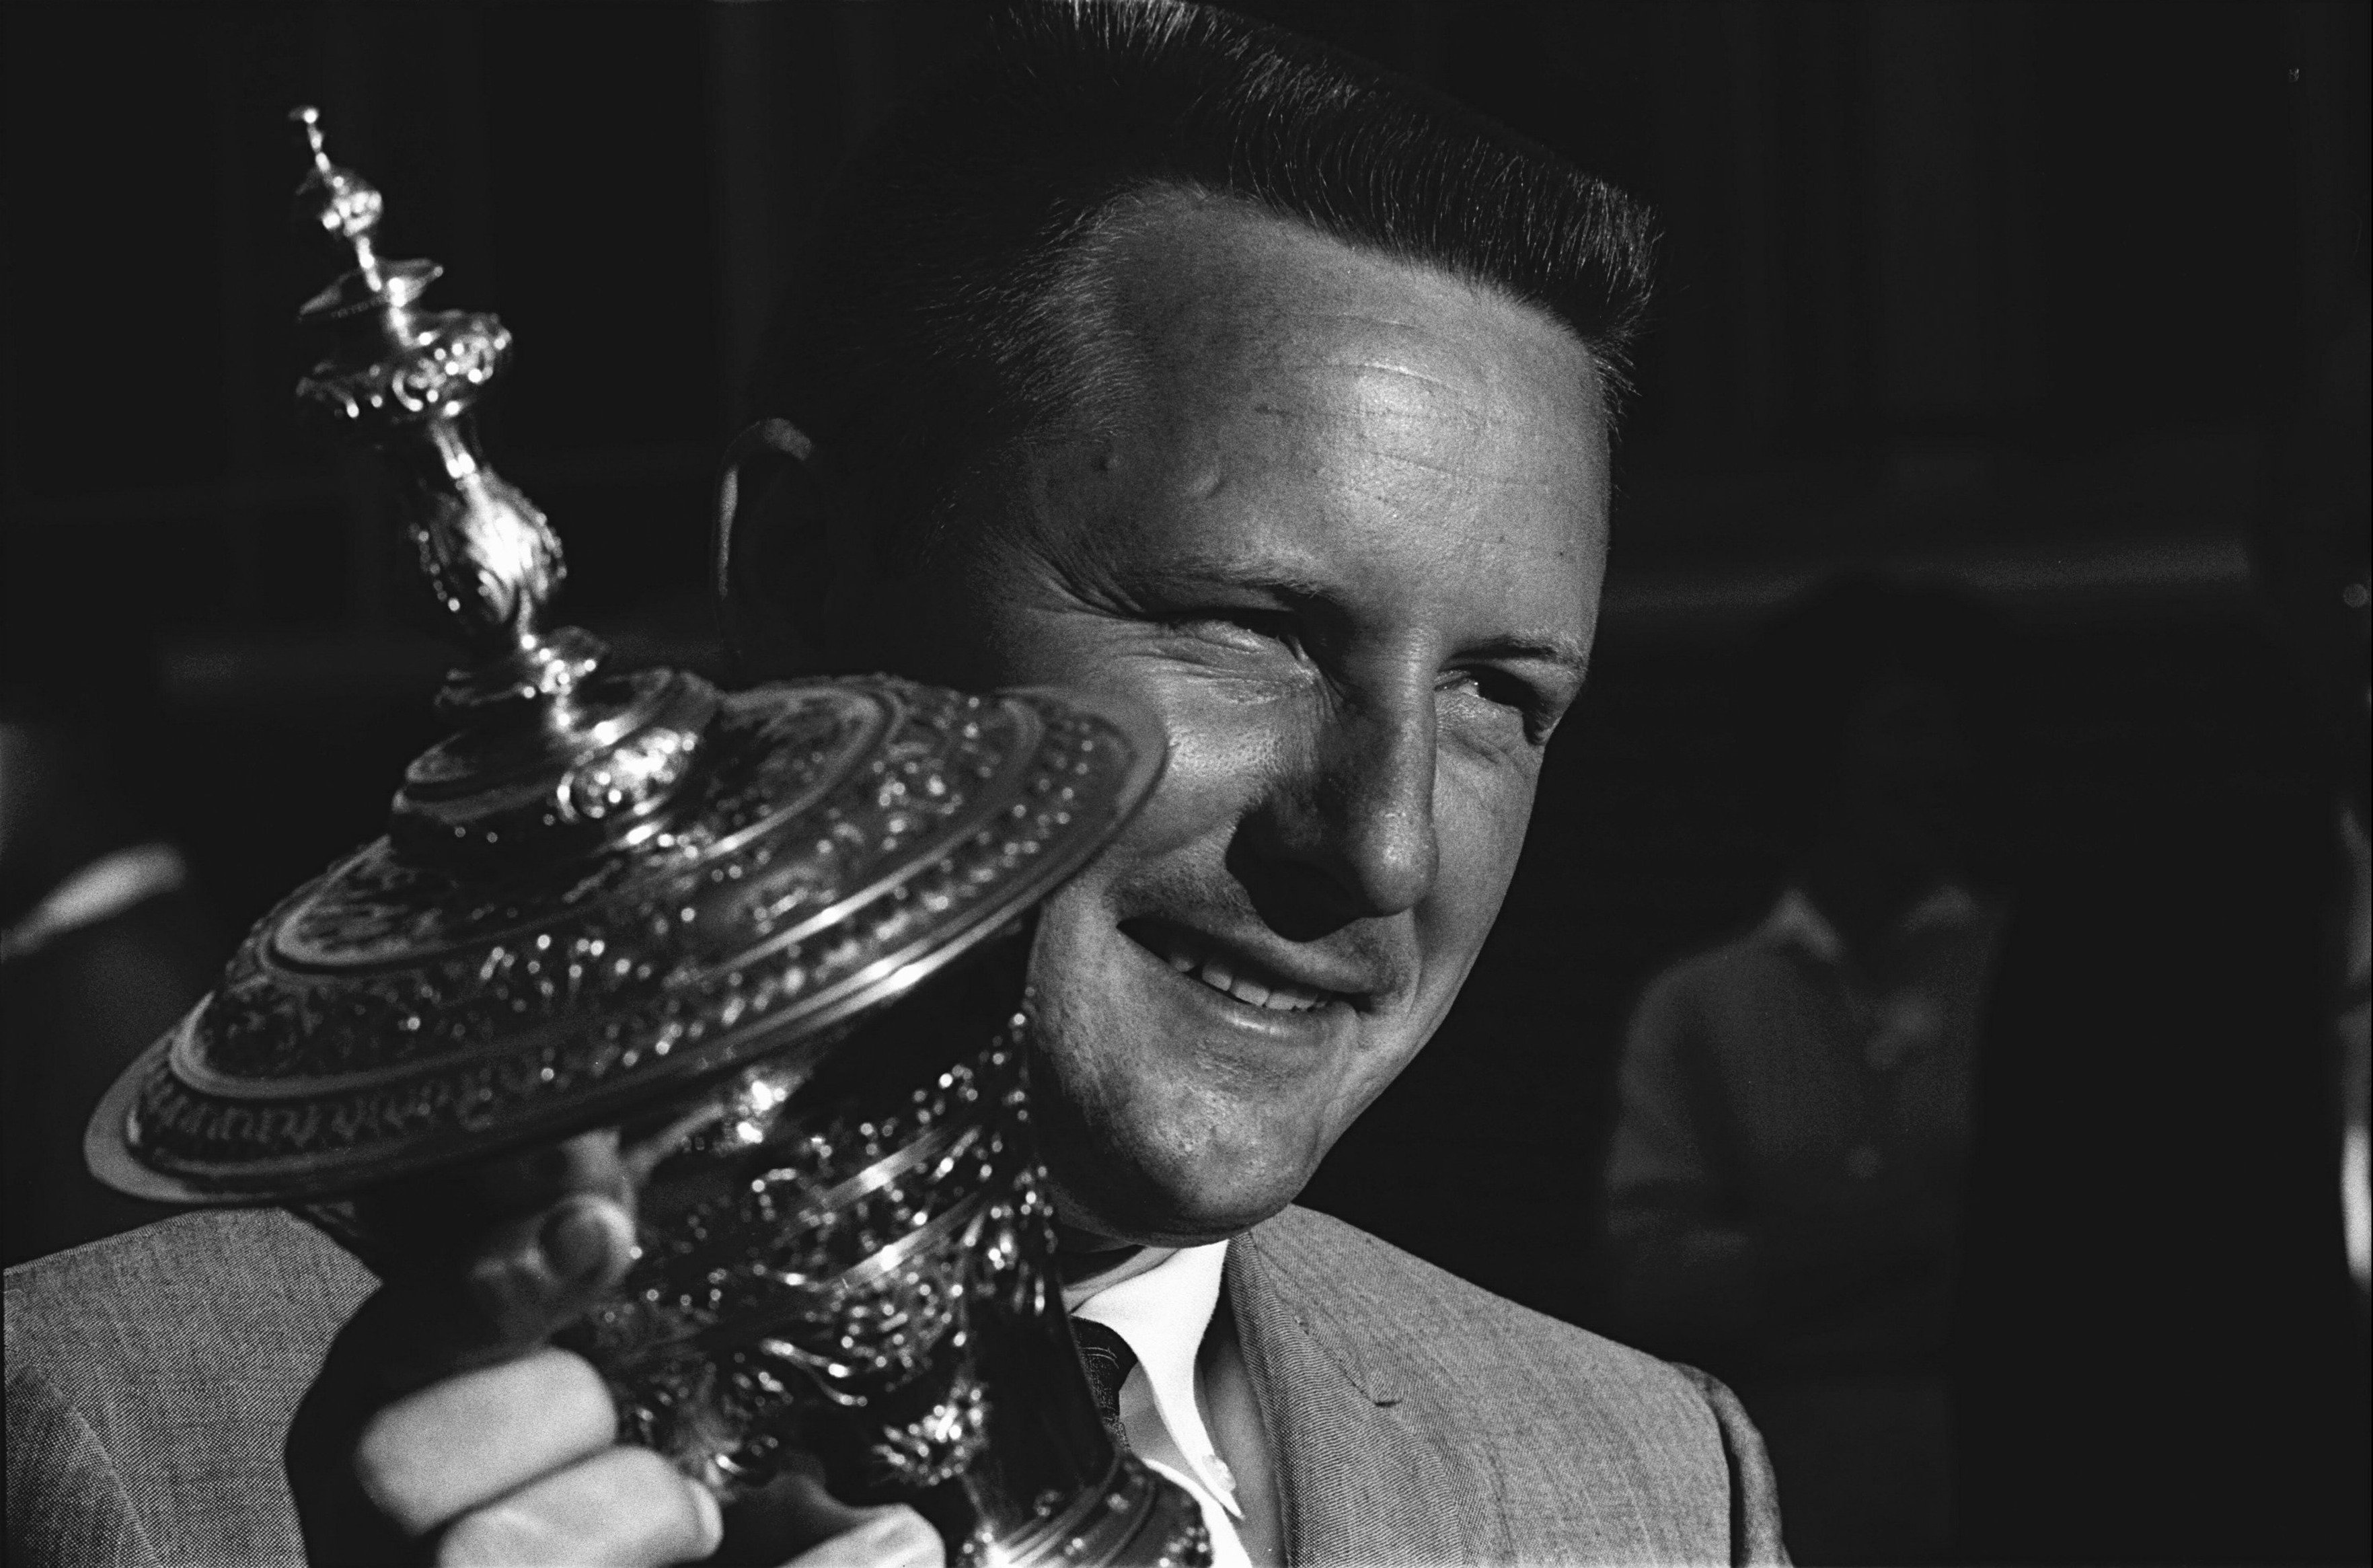 UNITED STATES - SEPTEMBER 13: Golf: US Amateur Open, Closeup of Deane Beman victorious with trophy at Wakonda Club, Des Moines, IA 9/13/1963 (Photo by Lee Balterman/Sports Illustrated/Getty Images) (SetNumber: X17644)